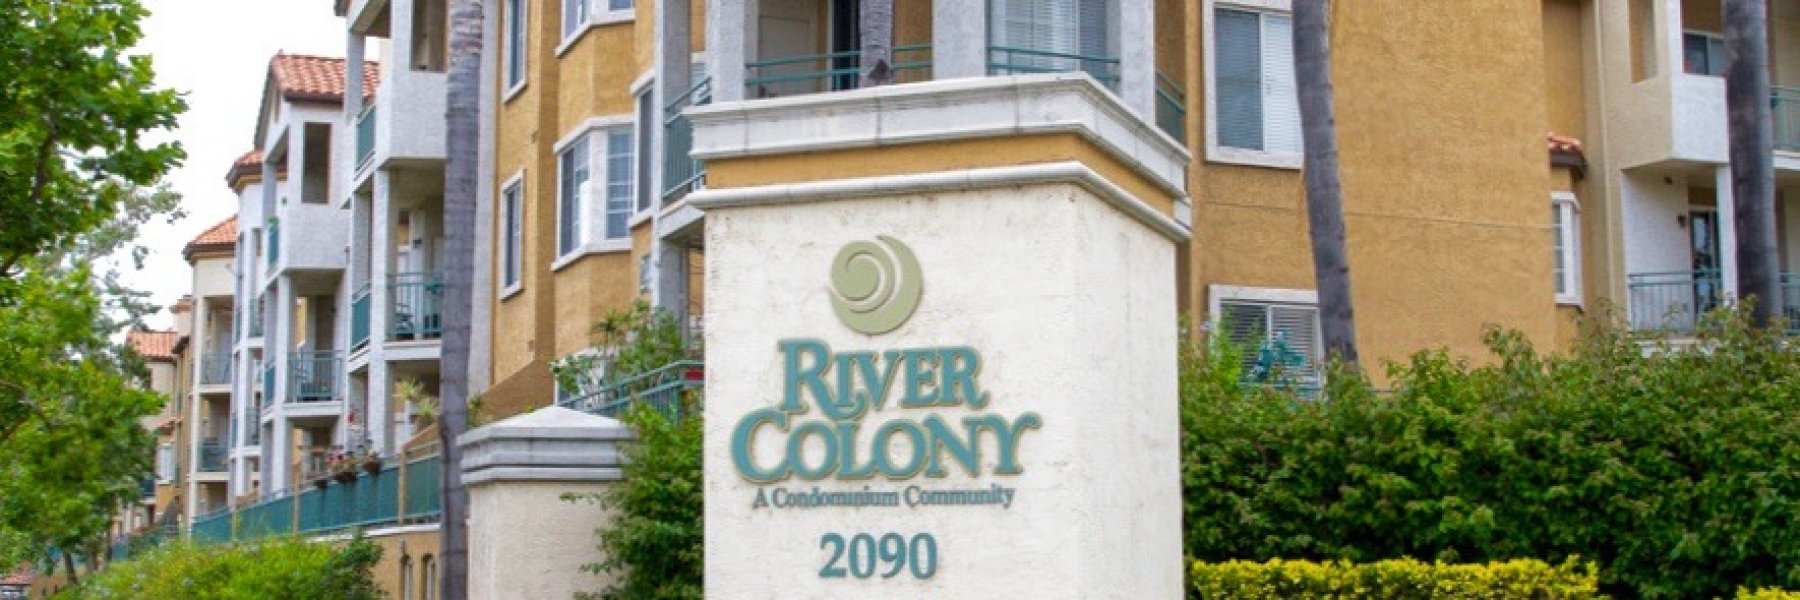 River Colony community of homes in San Diego